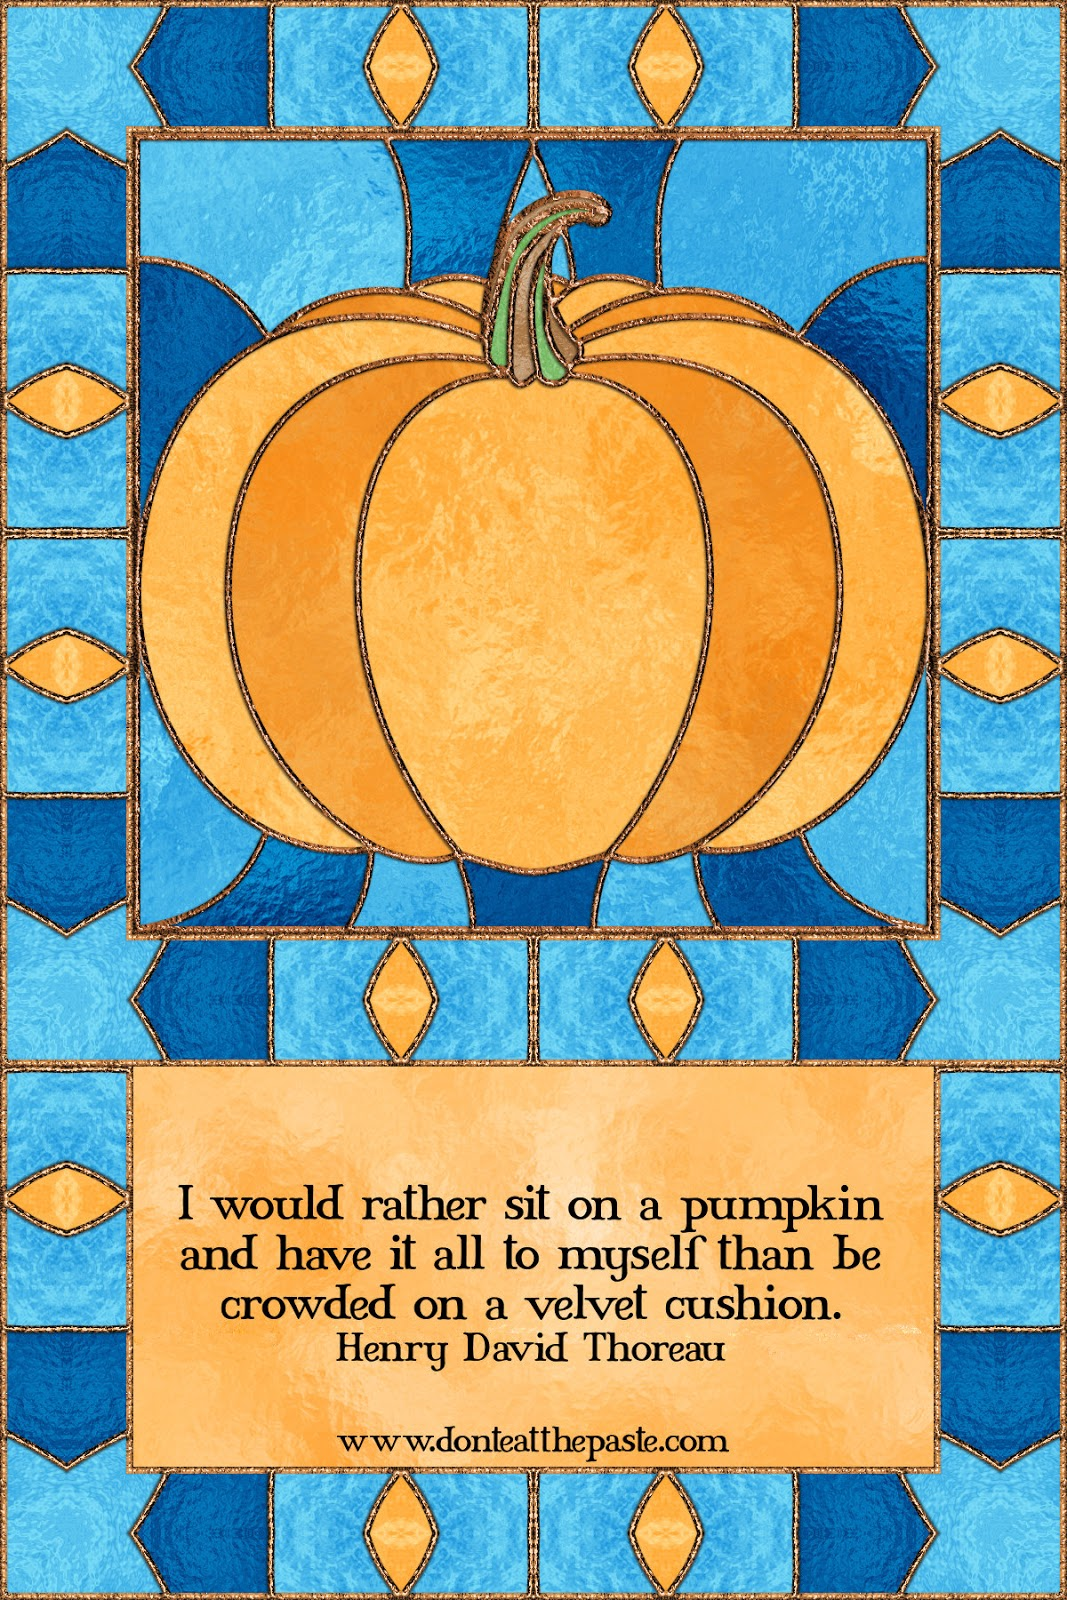 I would rather sit on a pumpkin quote